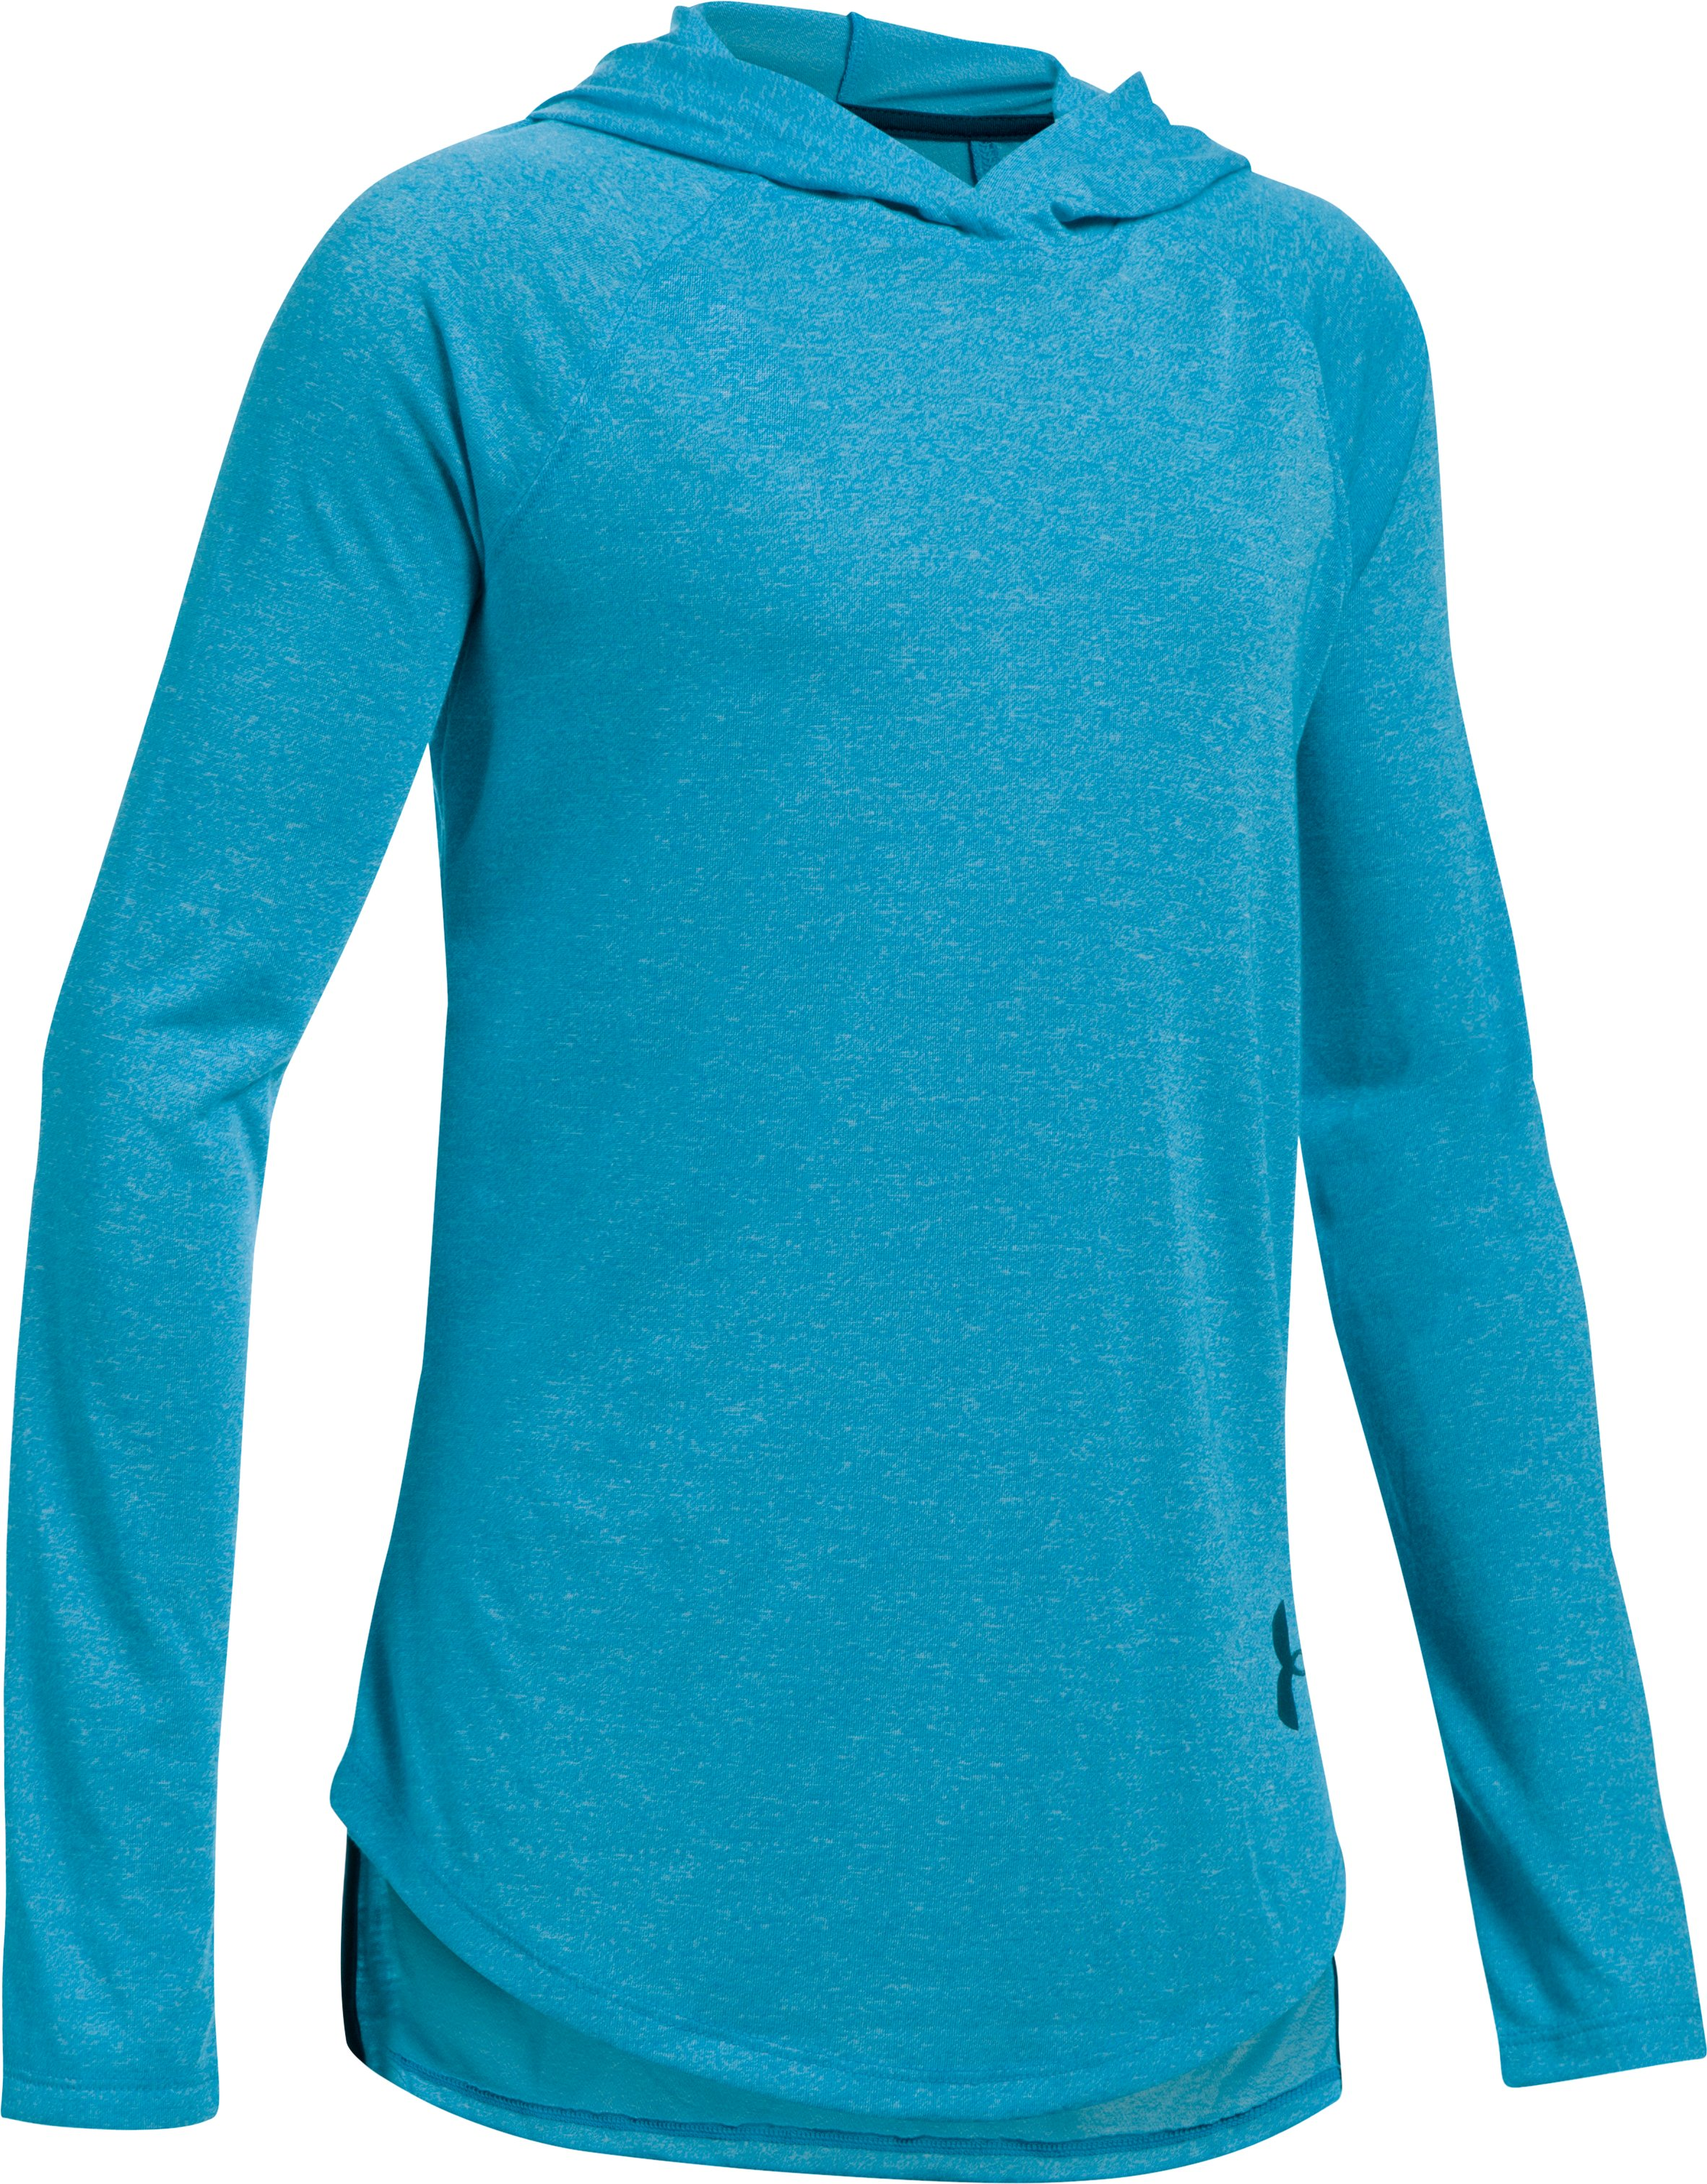 Girls' Threadborne™ Long Sleeve Hoodie, BLUE SHIFT, undefined